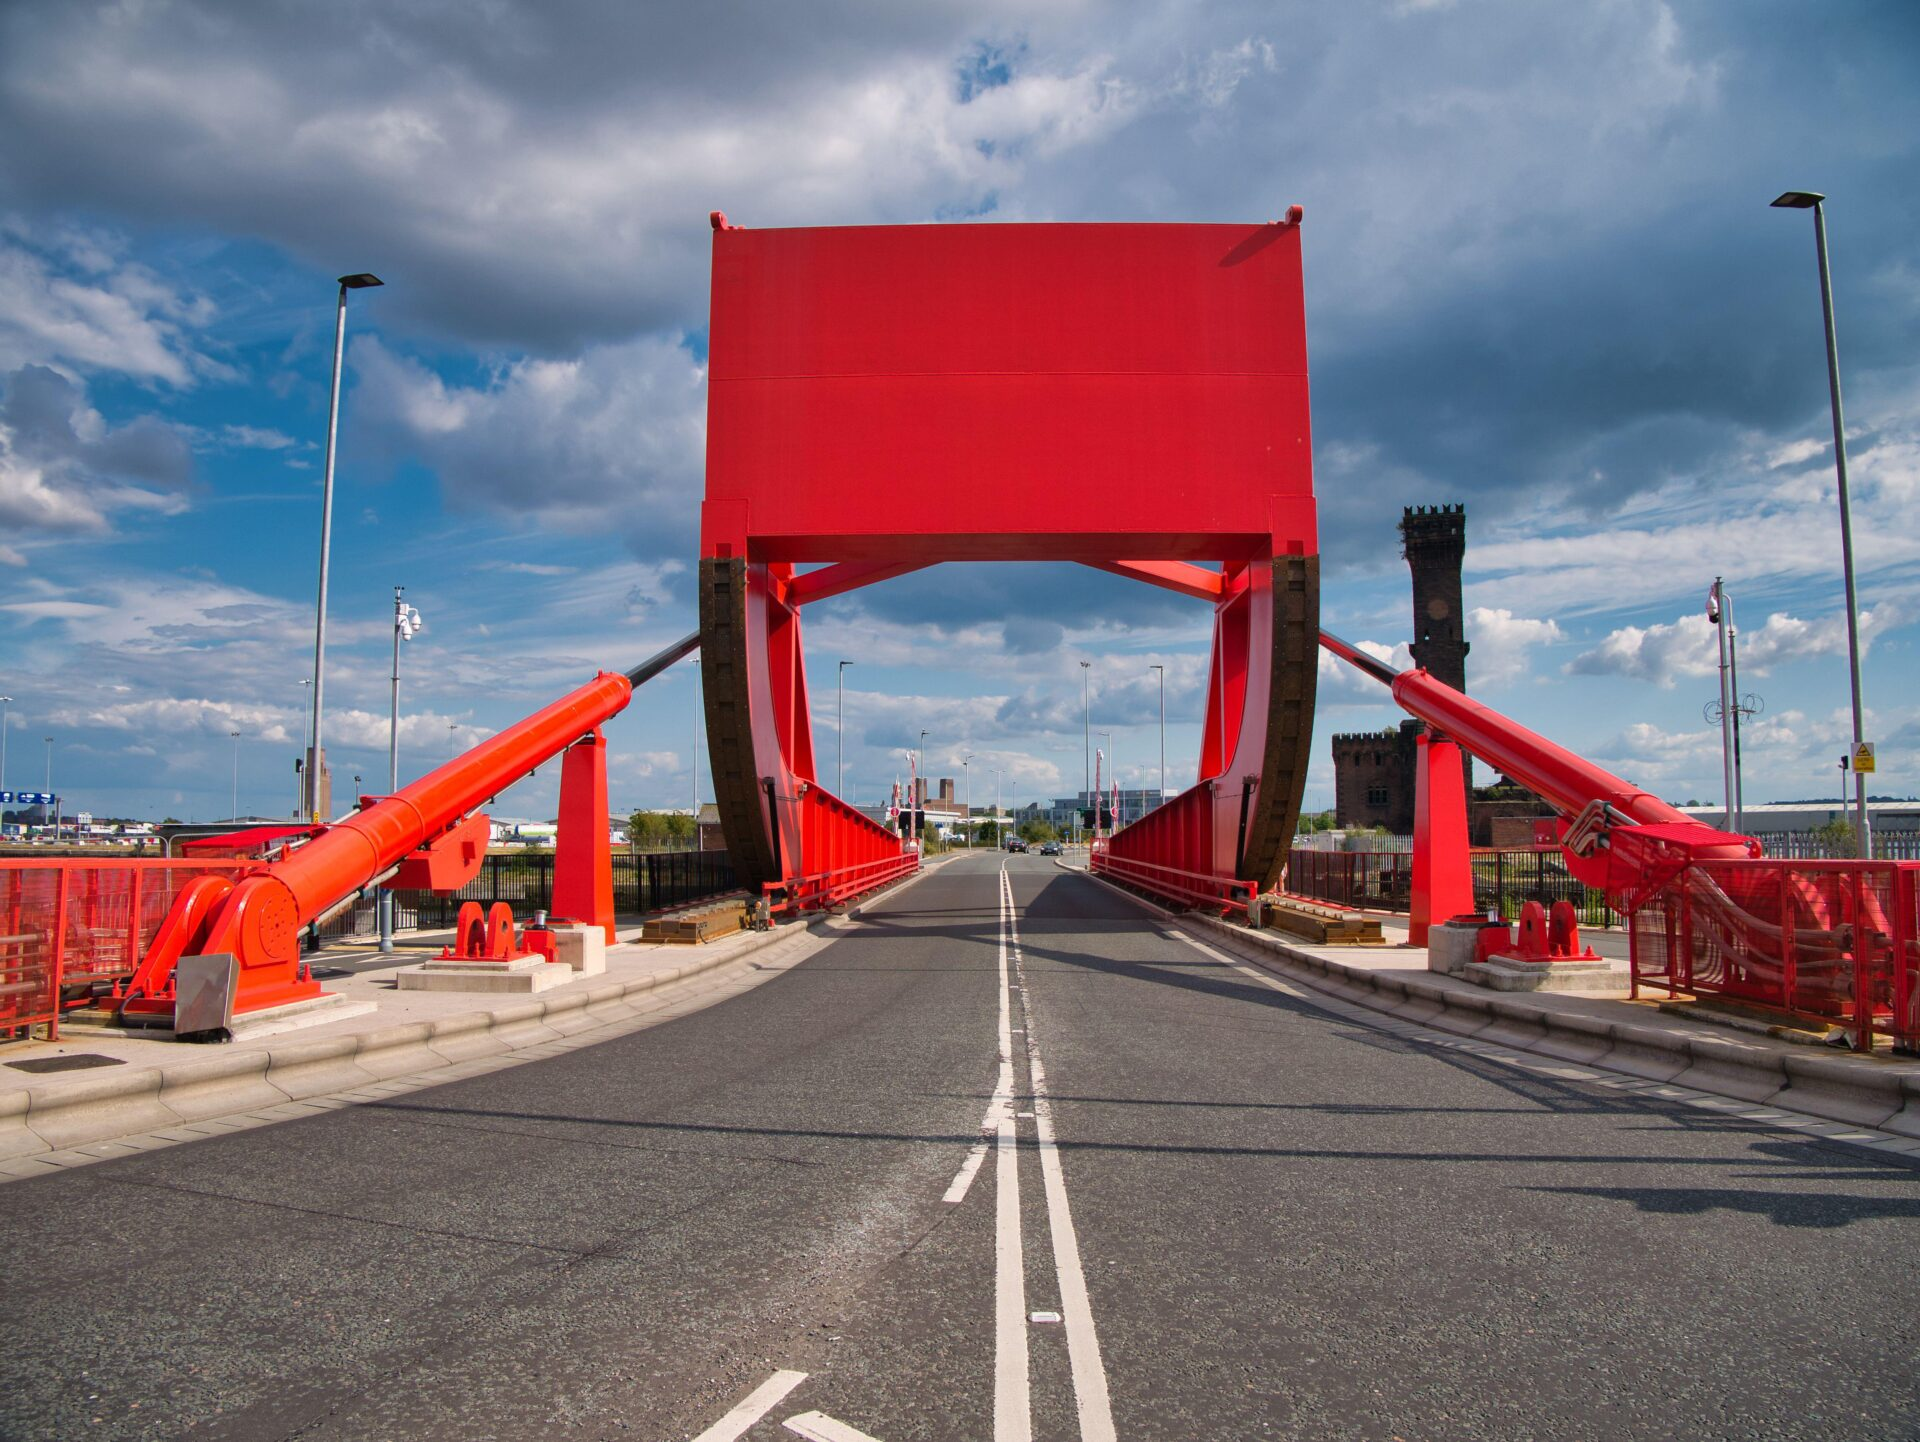 2C762T4 The counterweight and hydraulic rams of a red bascule bridge carrying road and pedestrian traffic across part of the docks complex in Birkenhead, UK.